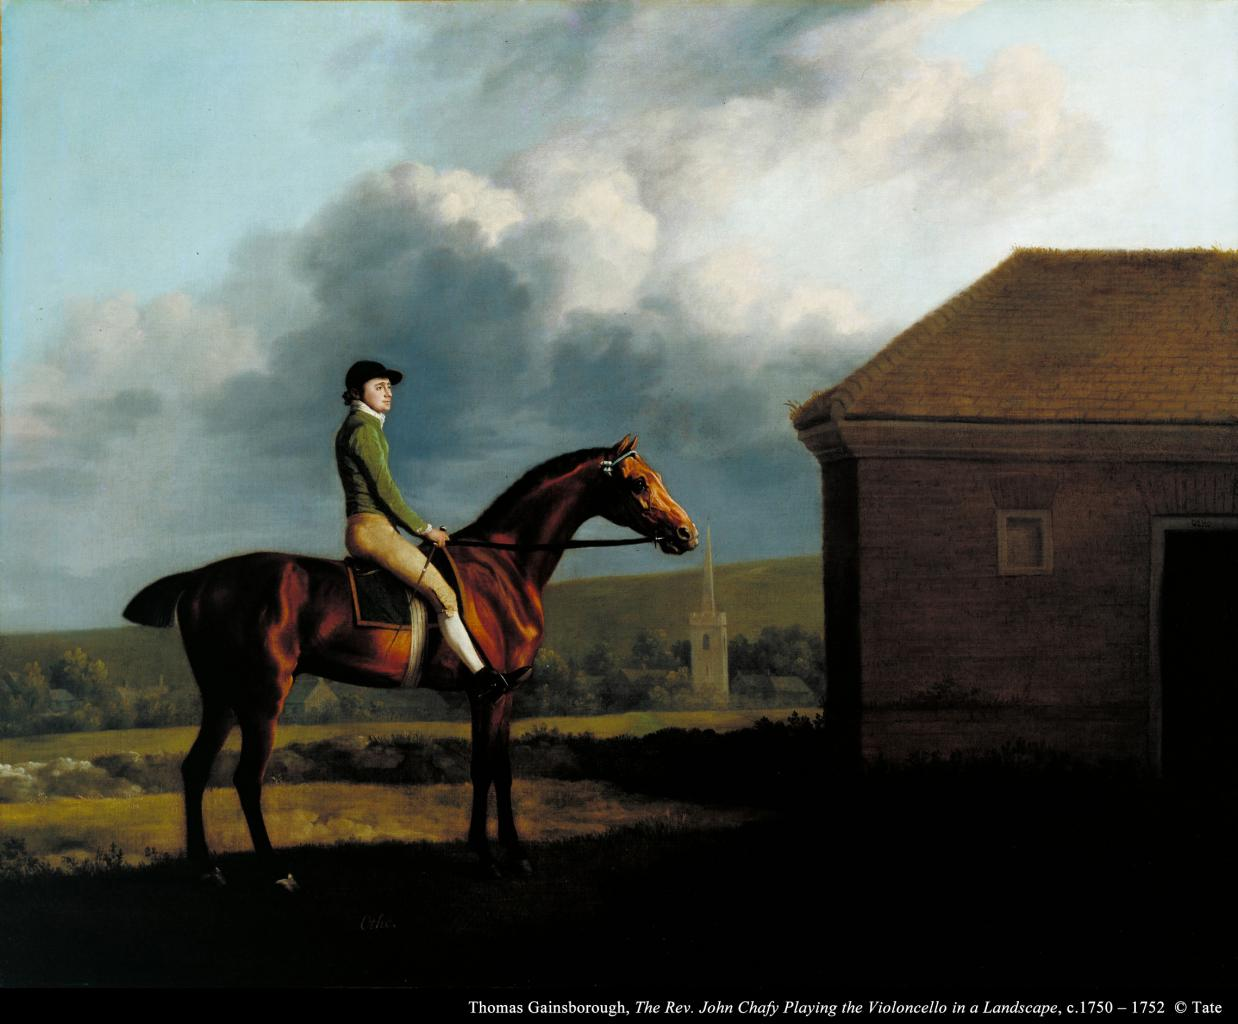 George Stubbs,Otho, with John Larkin up image